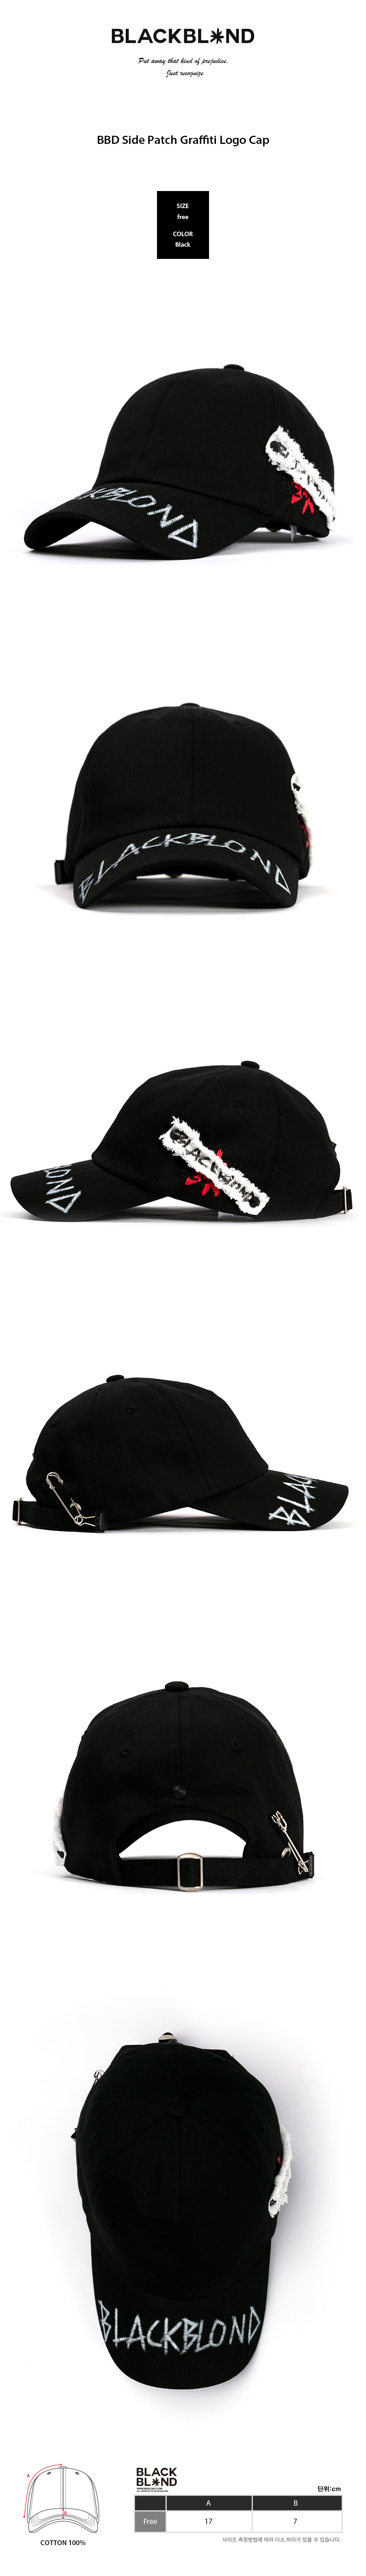 BBD-Side-Patch-Graffiti-Logo-Cap-%28Black%29.jpg